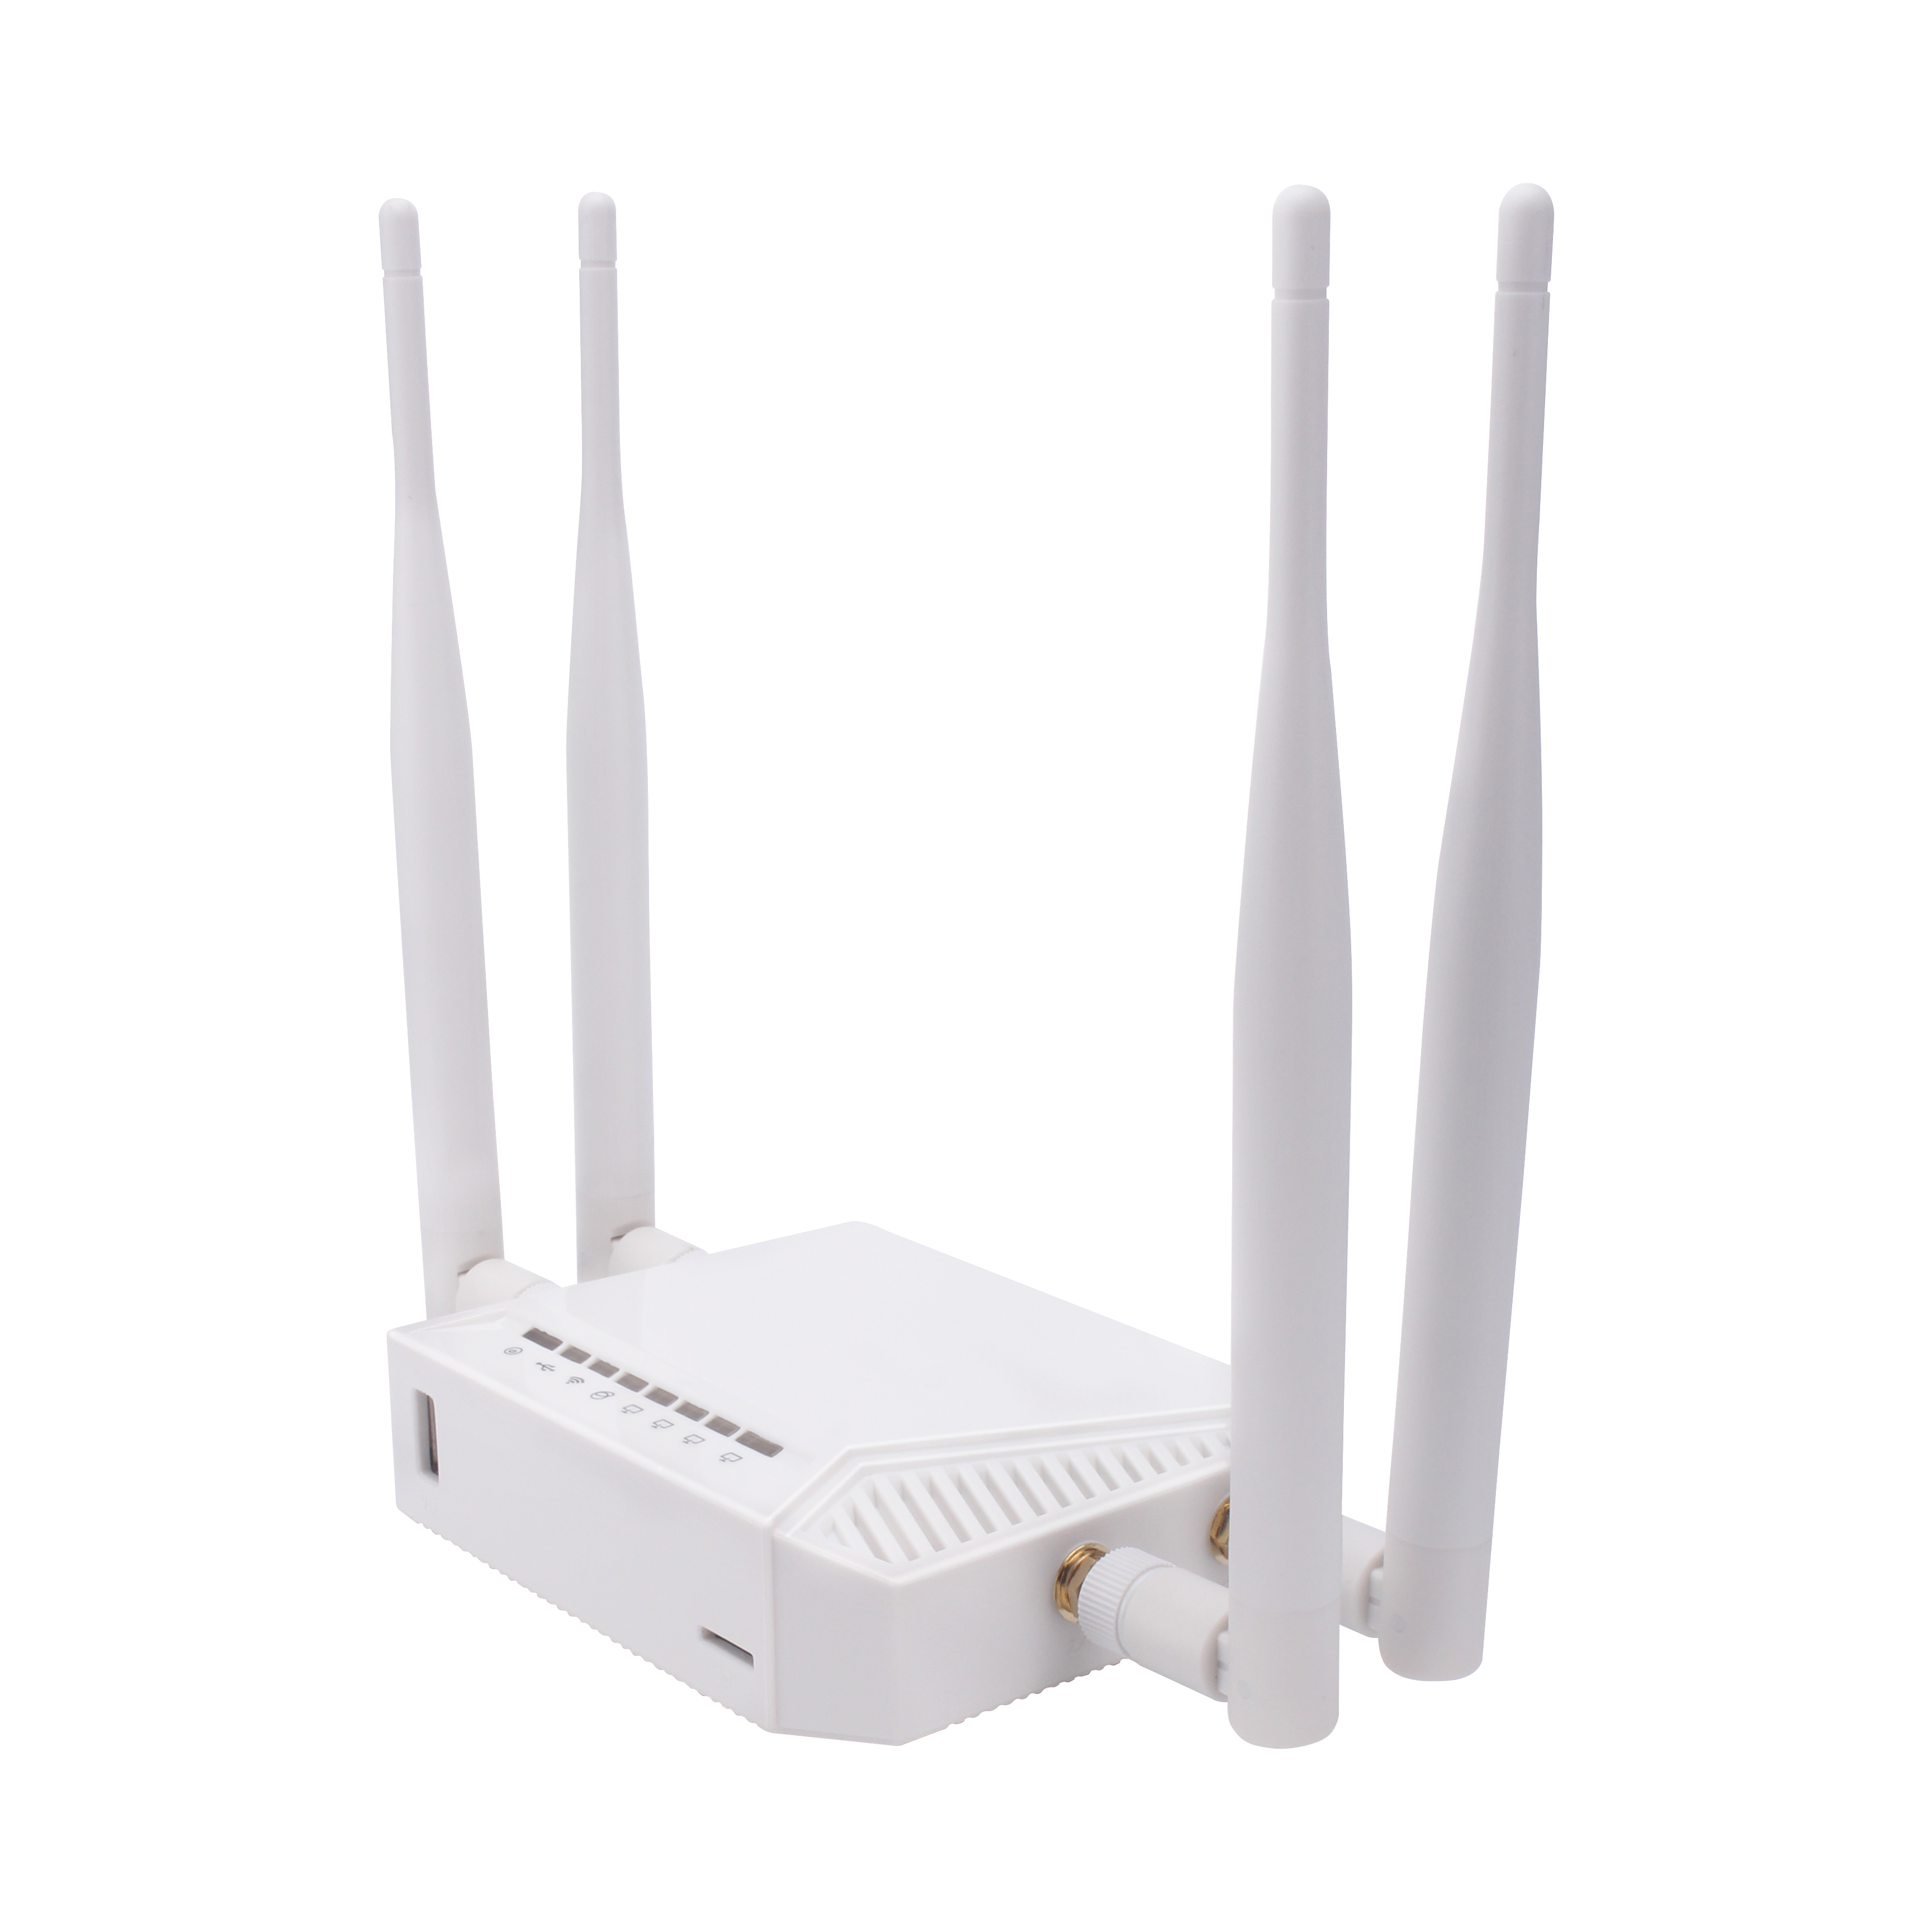 Image 2 - Kuwfi 3G/4G SIM Card Slot Wifi Router OpenWrt 300Mbps High Power Wireless Router Repeater with VPN Function and 4*5dBi Antenna-in Wireless Routers from Computer & Office